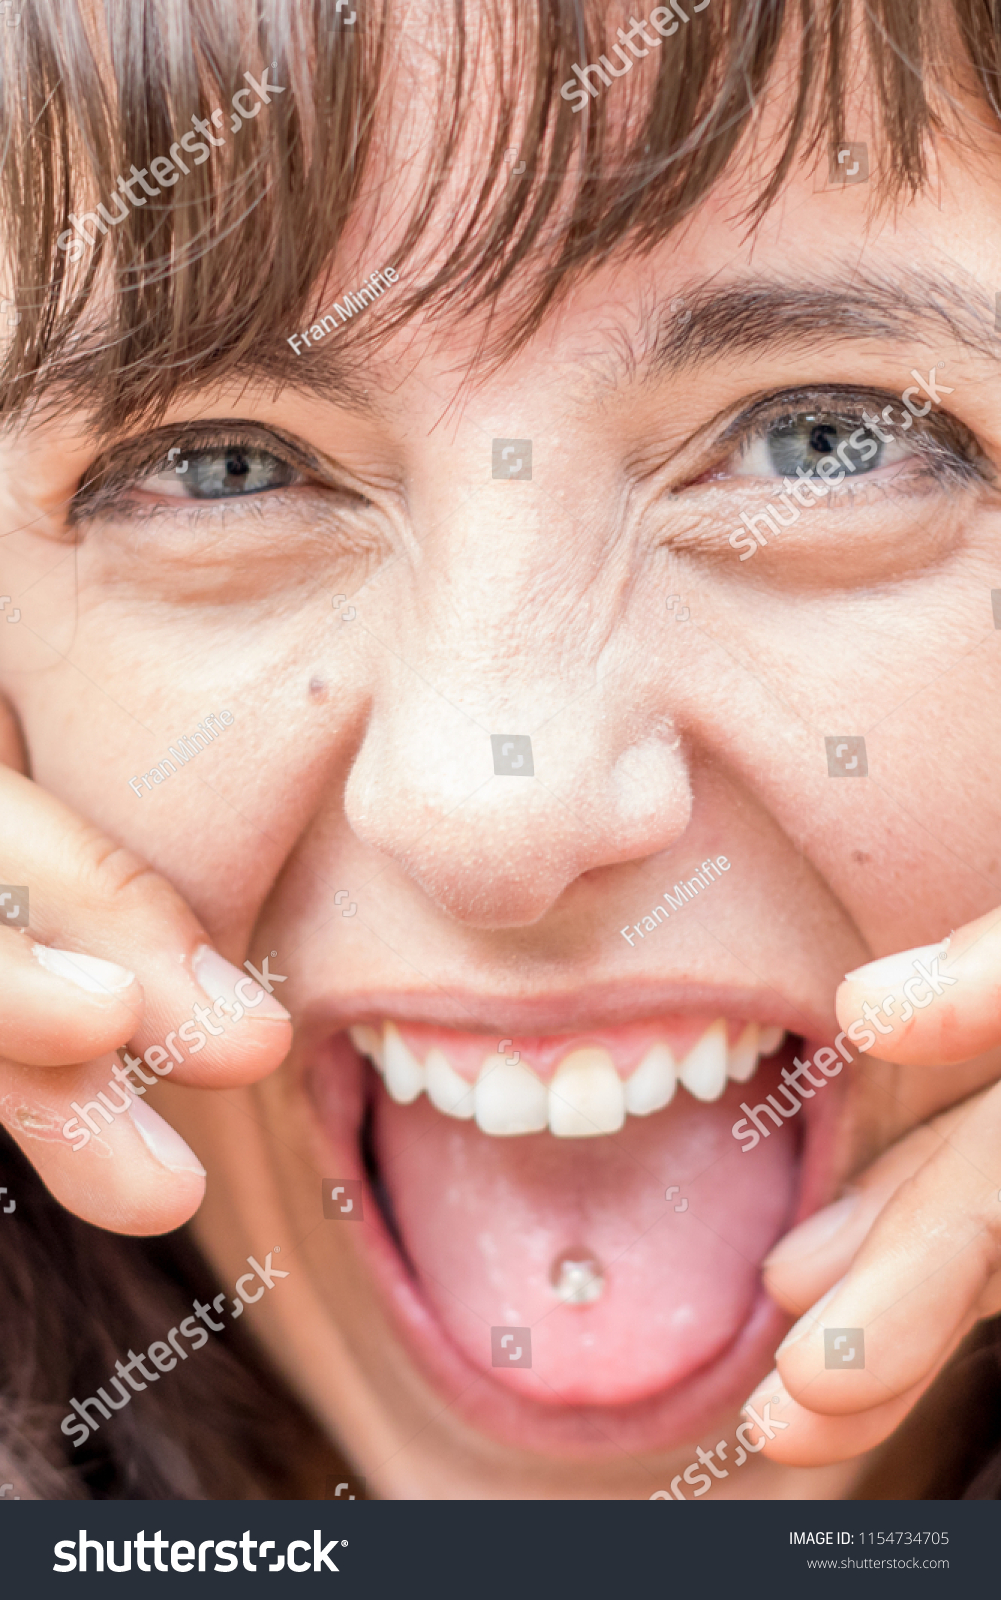 Model Crazy Facial Expression Shows Tongue People Stock Image